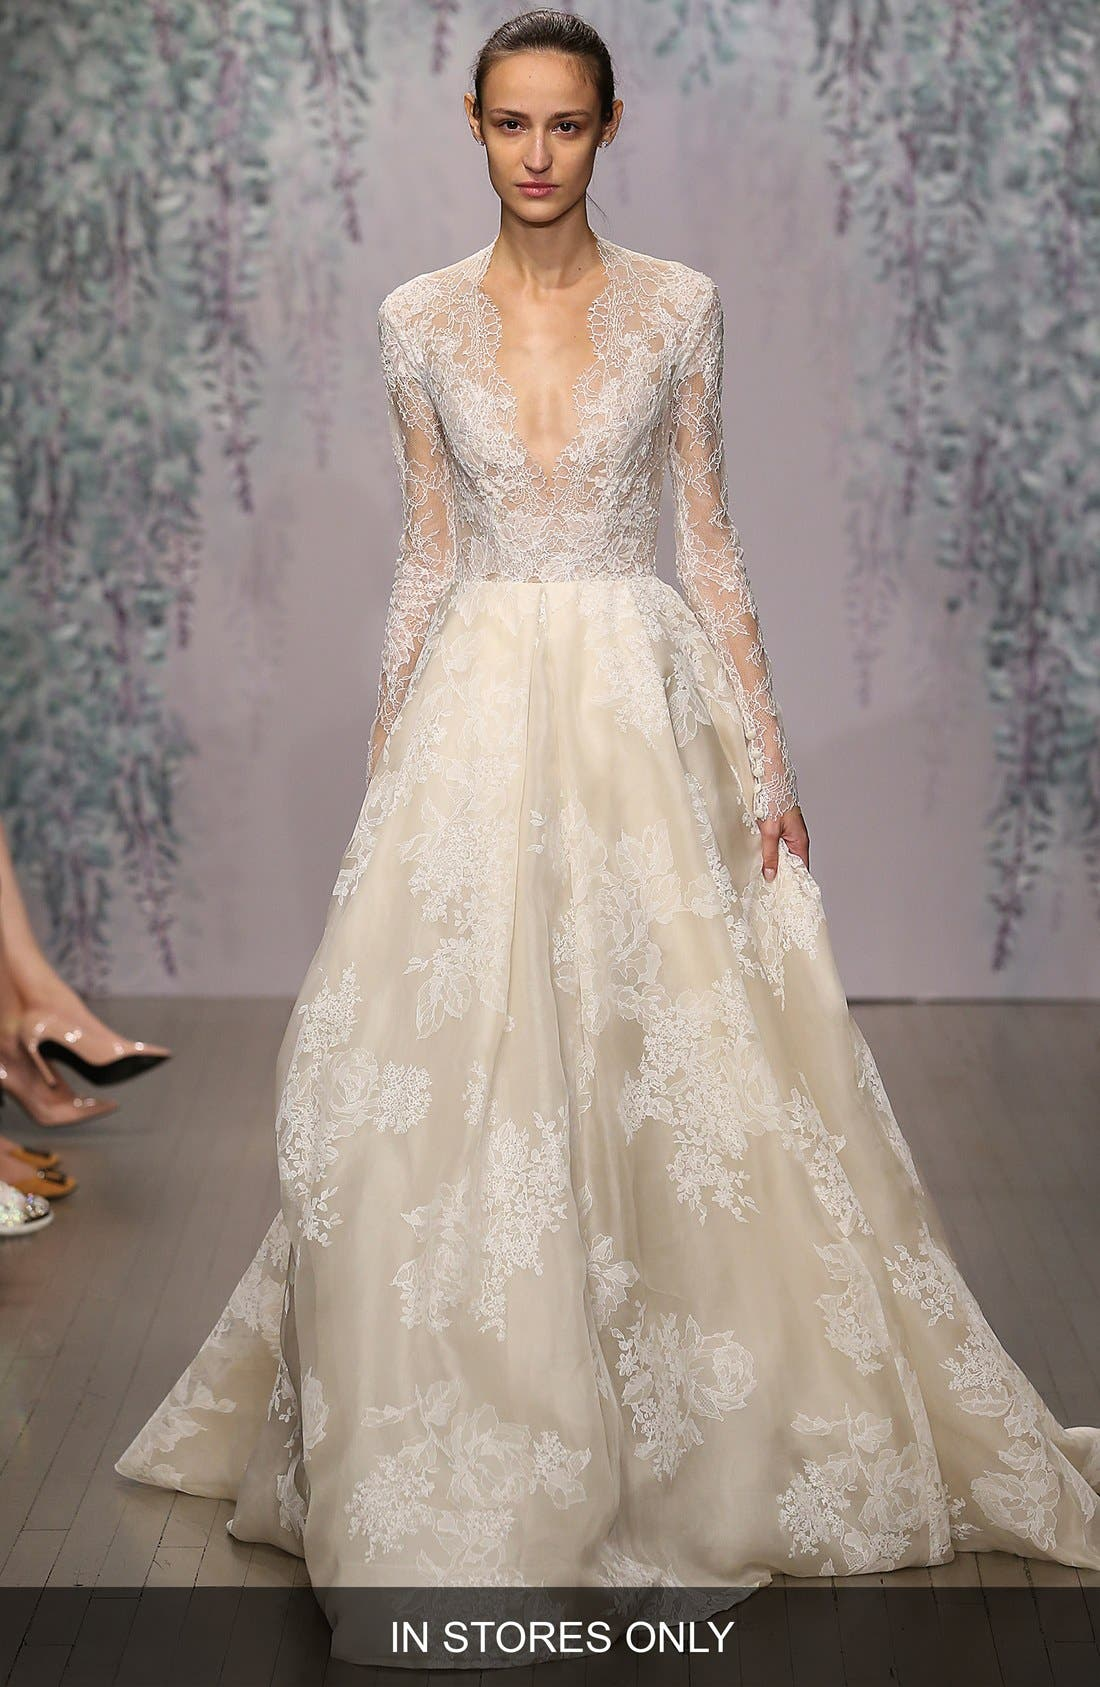 Winslet Plunging V-Neck Organza & Lace Ballgown Dress,                             Main thumbnail 1, color,